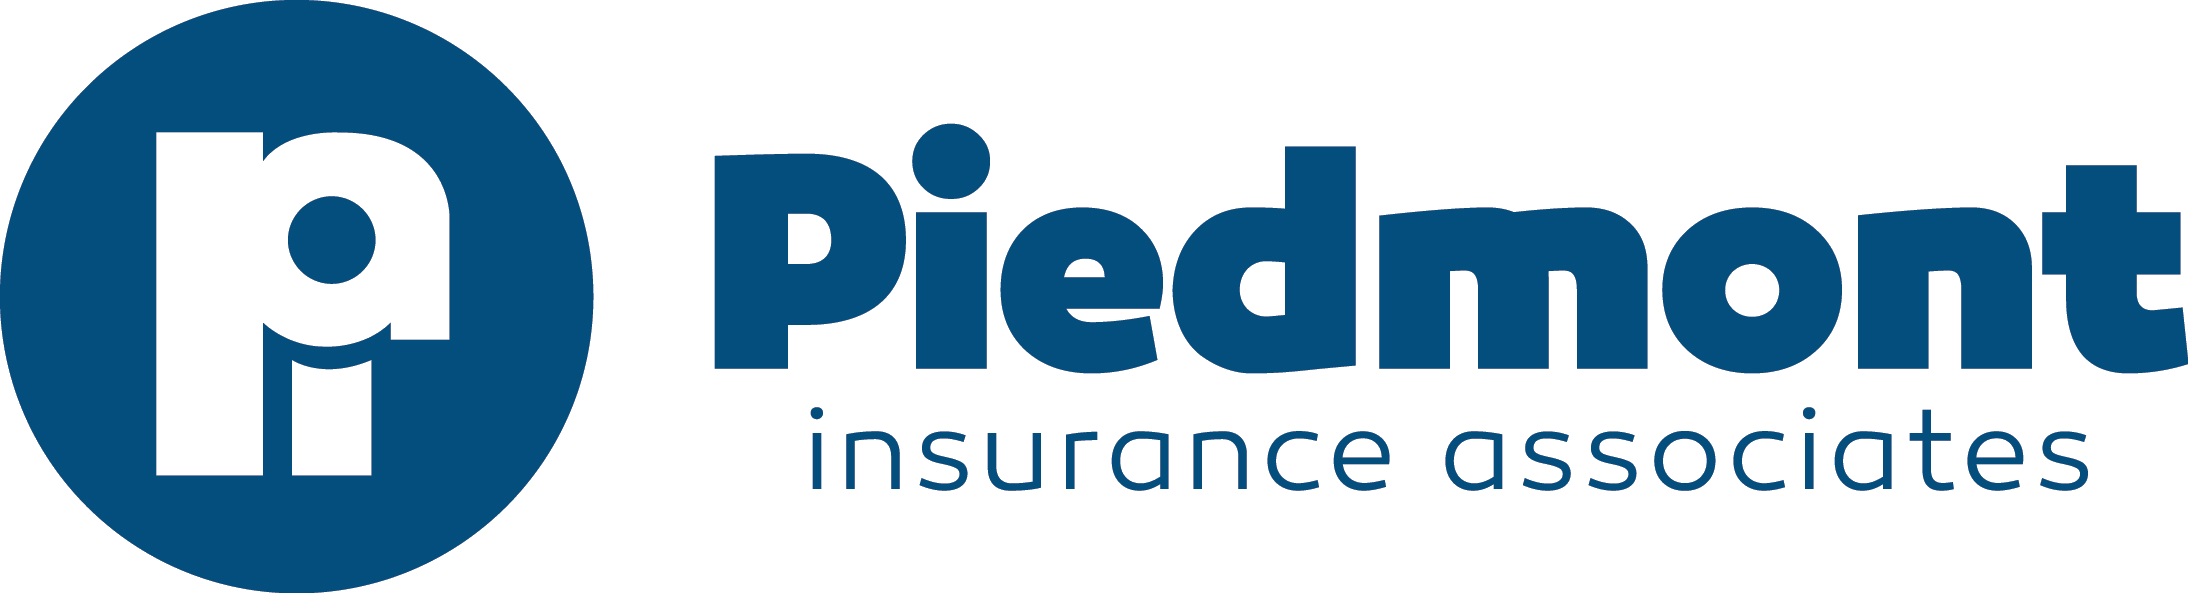 Powered by Smart Insurance